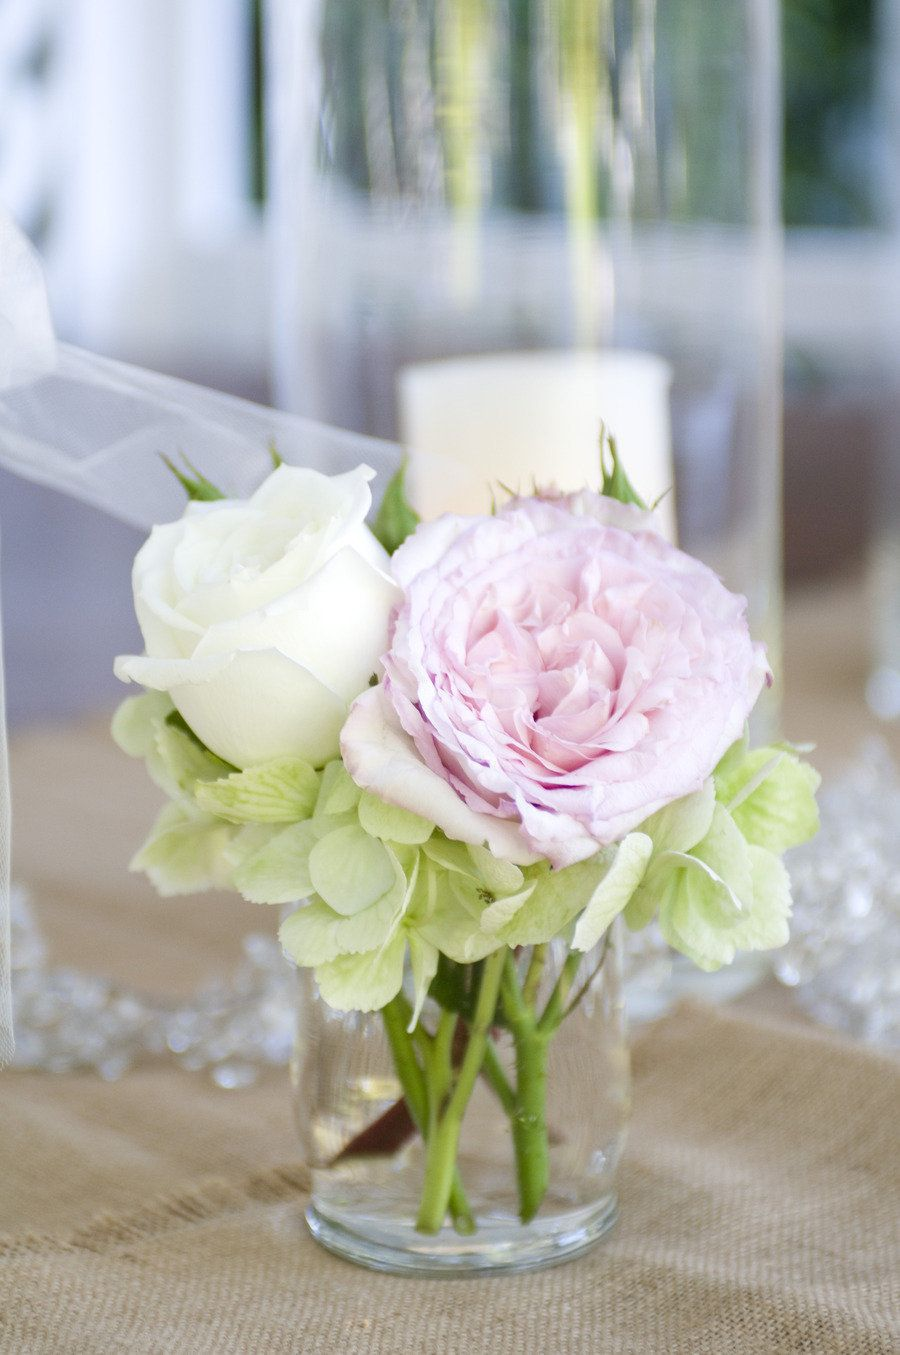 Backyard danville wedding from angie silvy photography in